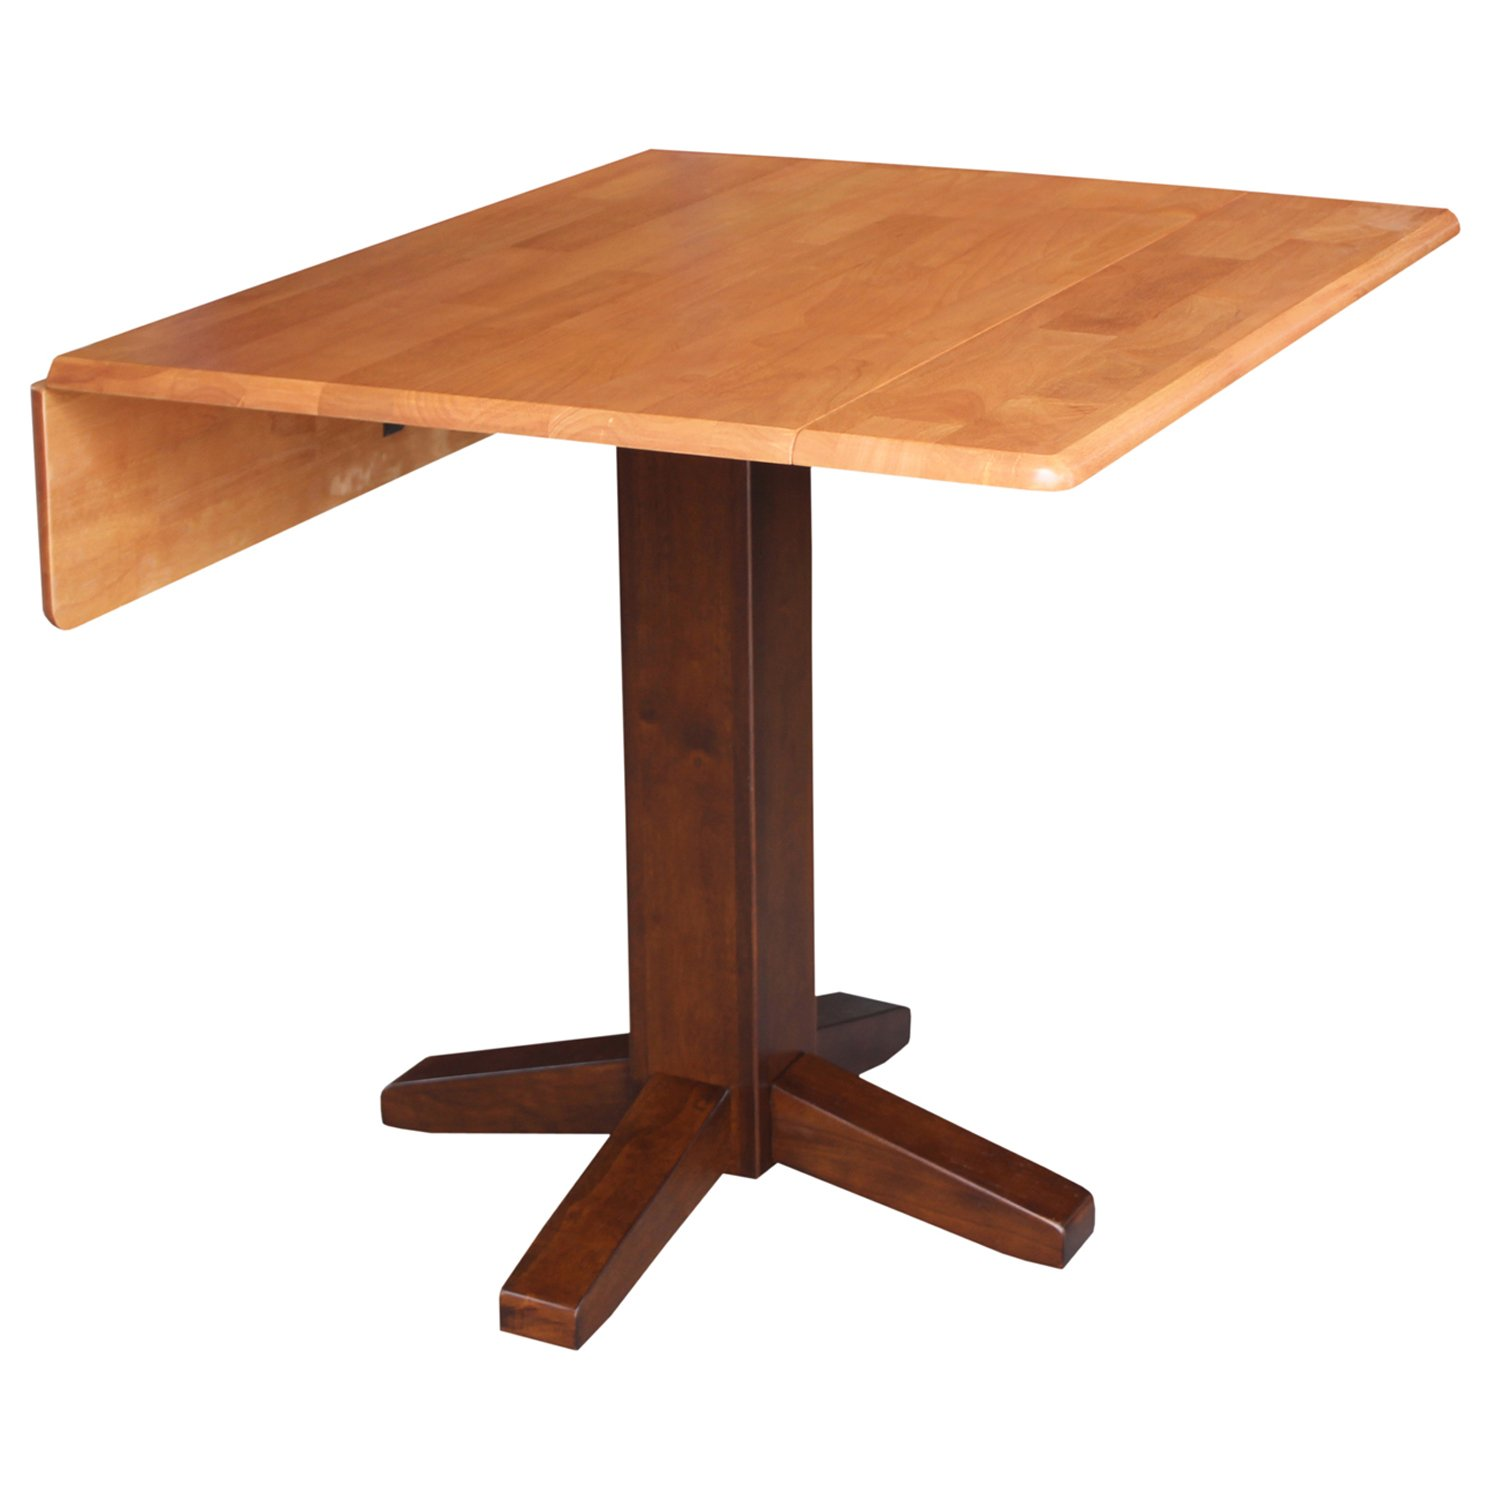 International Concepts T58-36SDP Square Dual Drop Leaf Dining Table, 36'', Cinnamon/Espresso by International Concepts